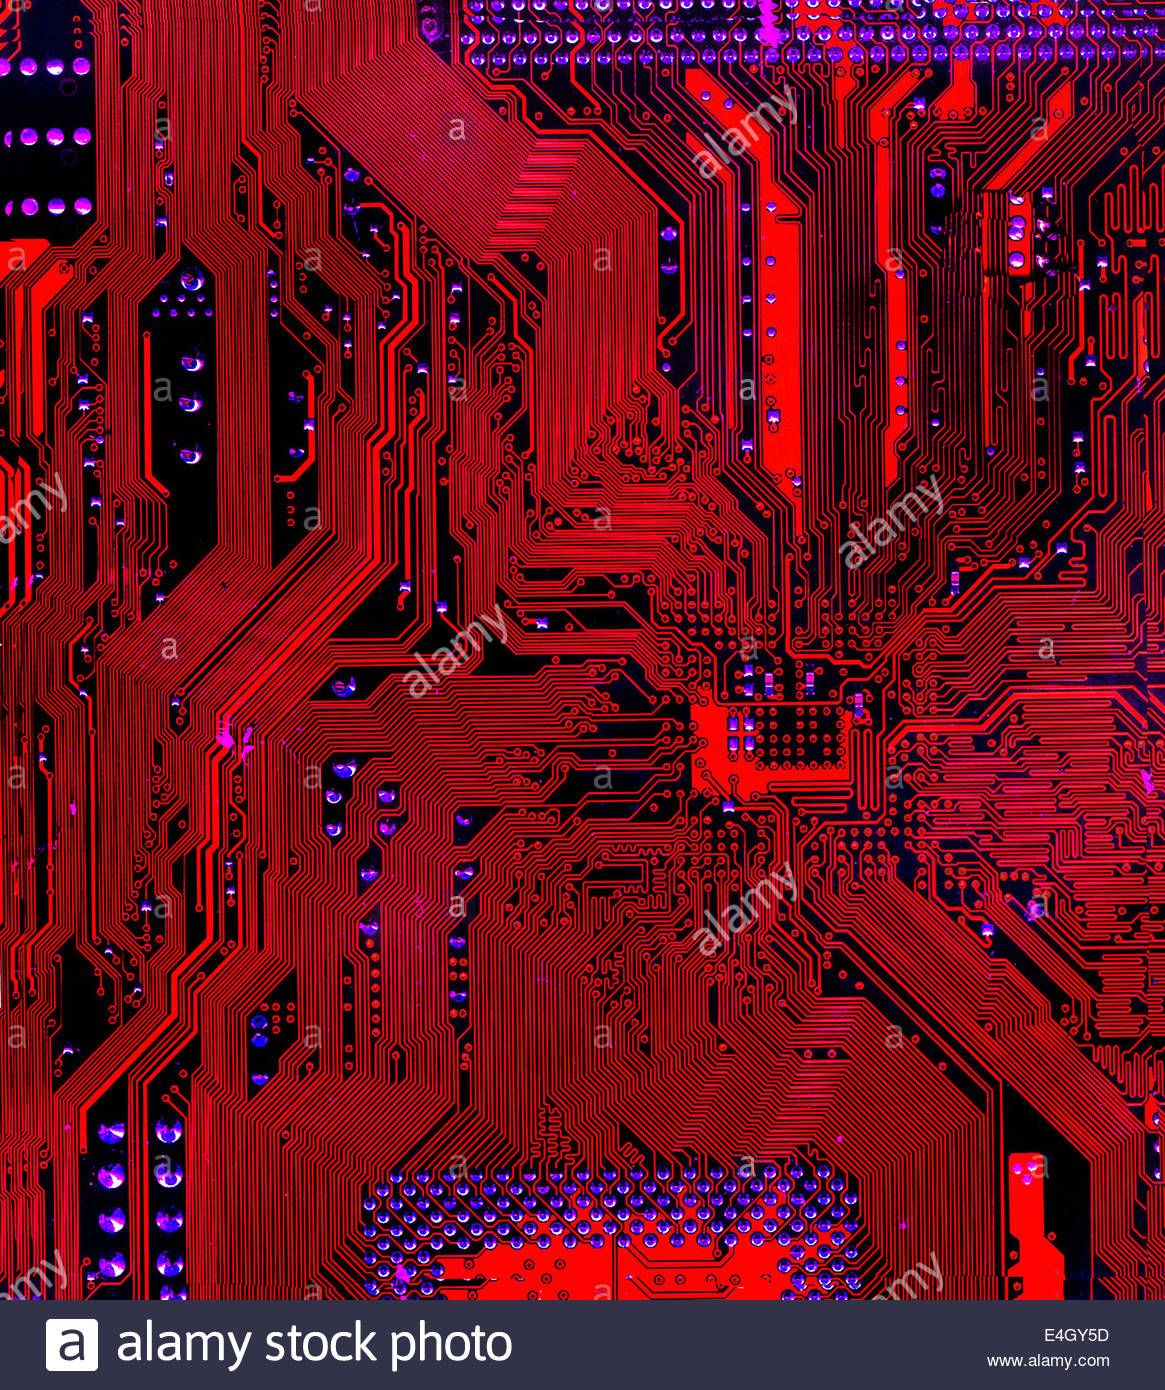 Abstract full frame red circuit board Photo Stock